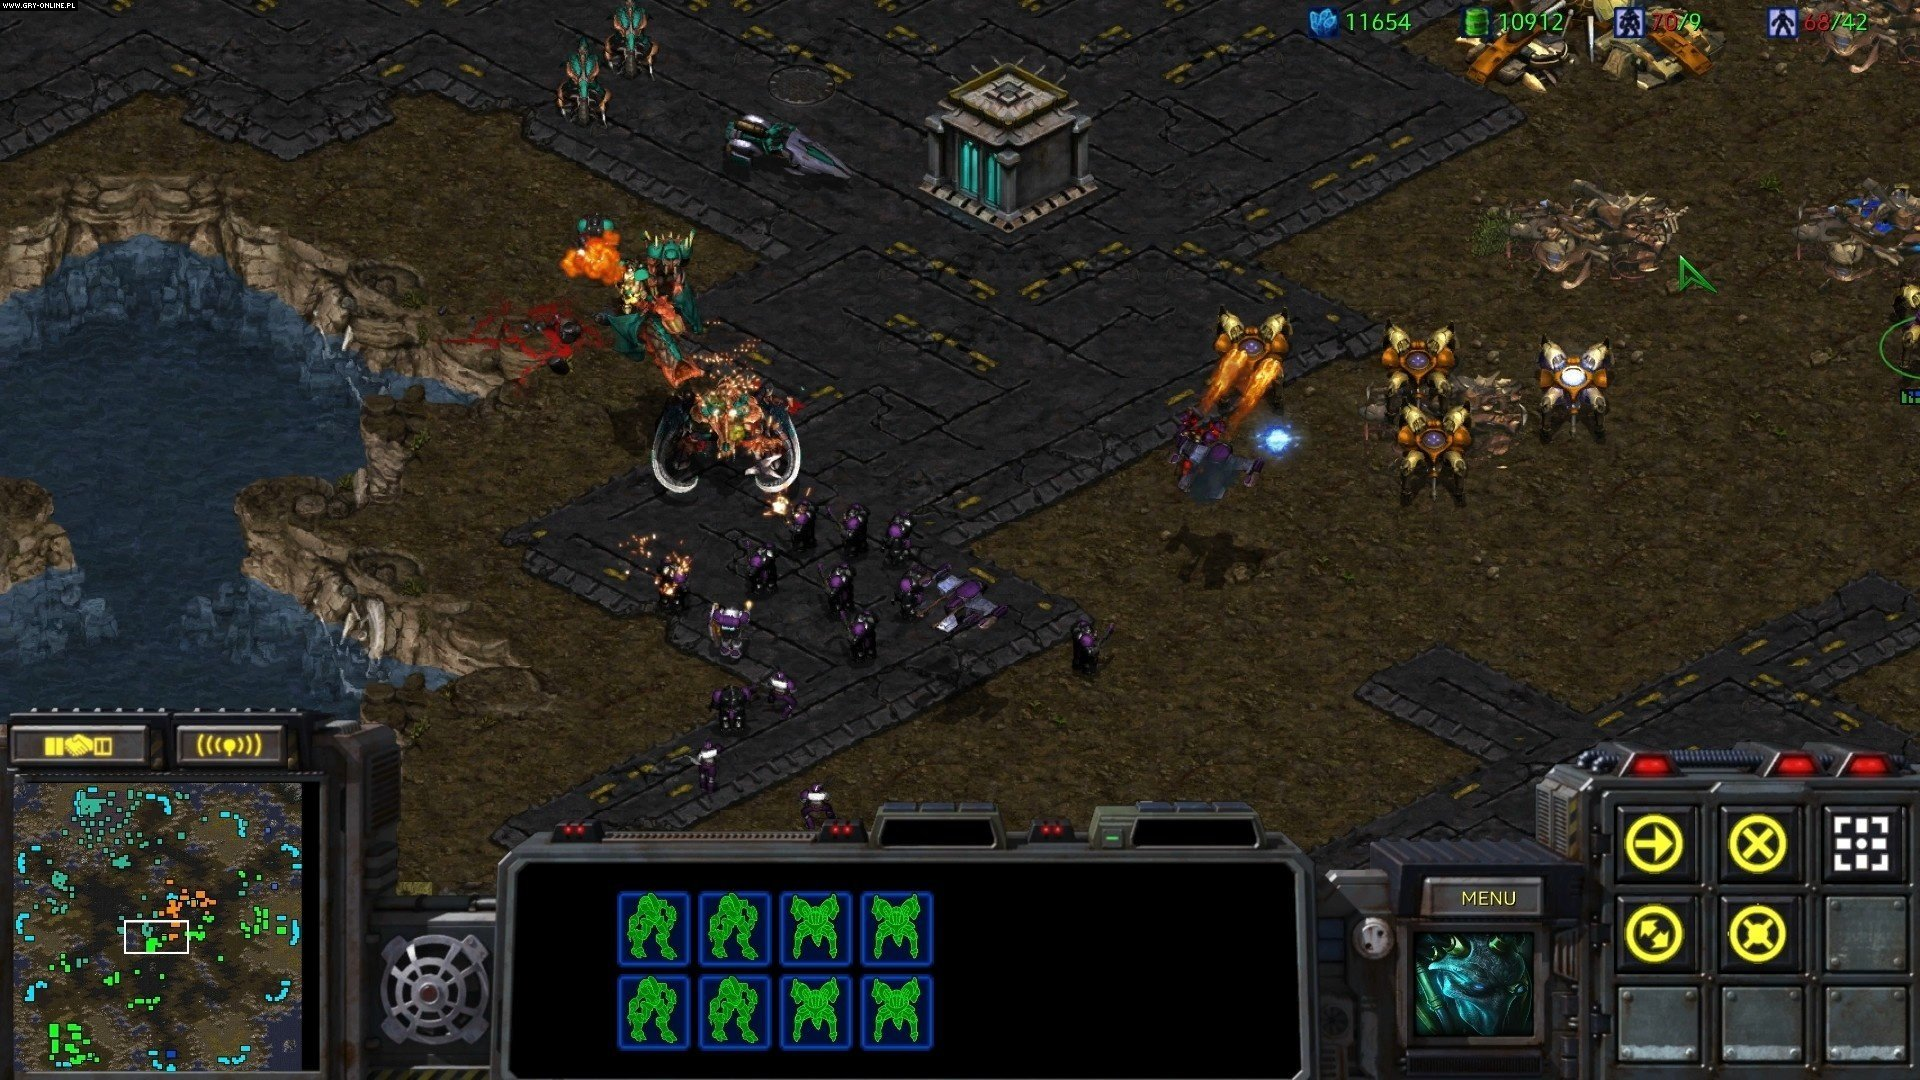 StarCraft: Remastered PC Gry Screen 9/15, Blizzard Entertainment